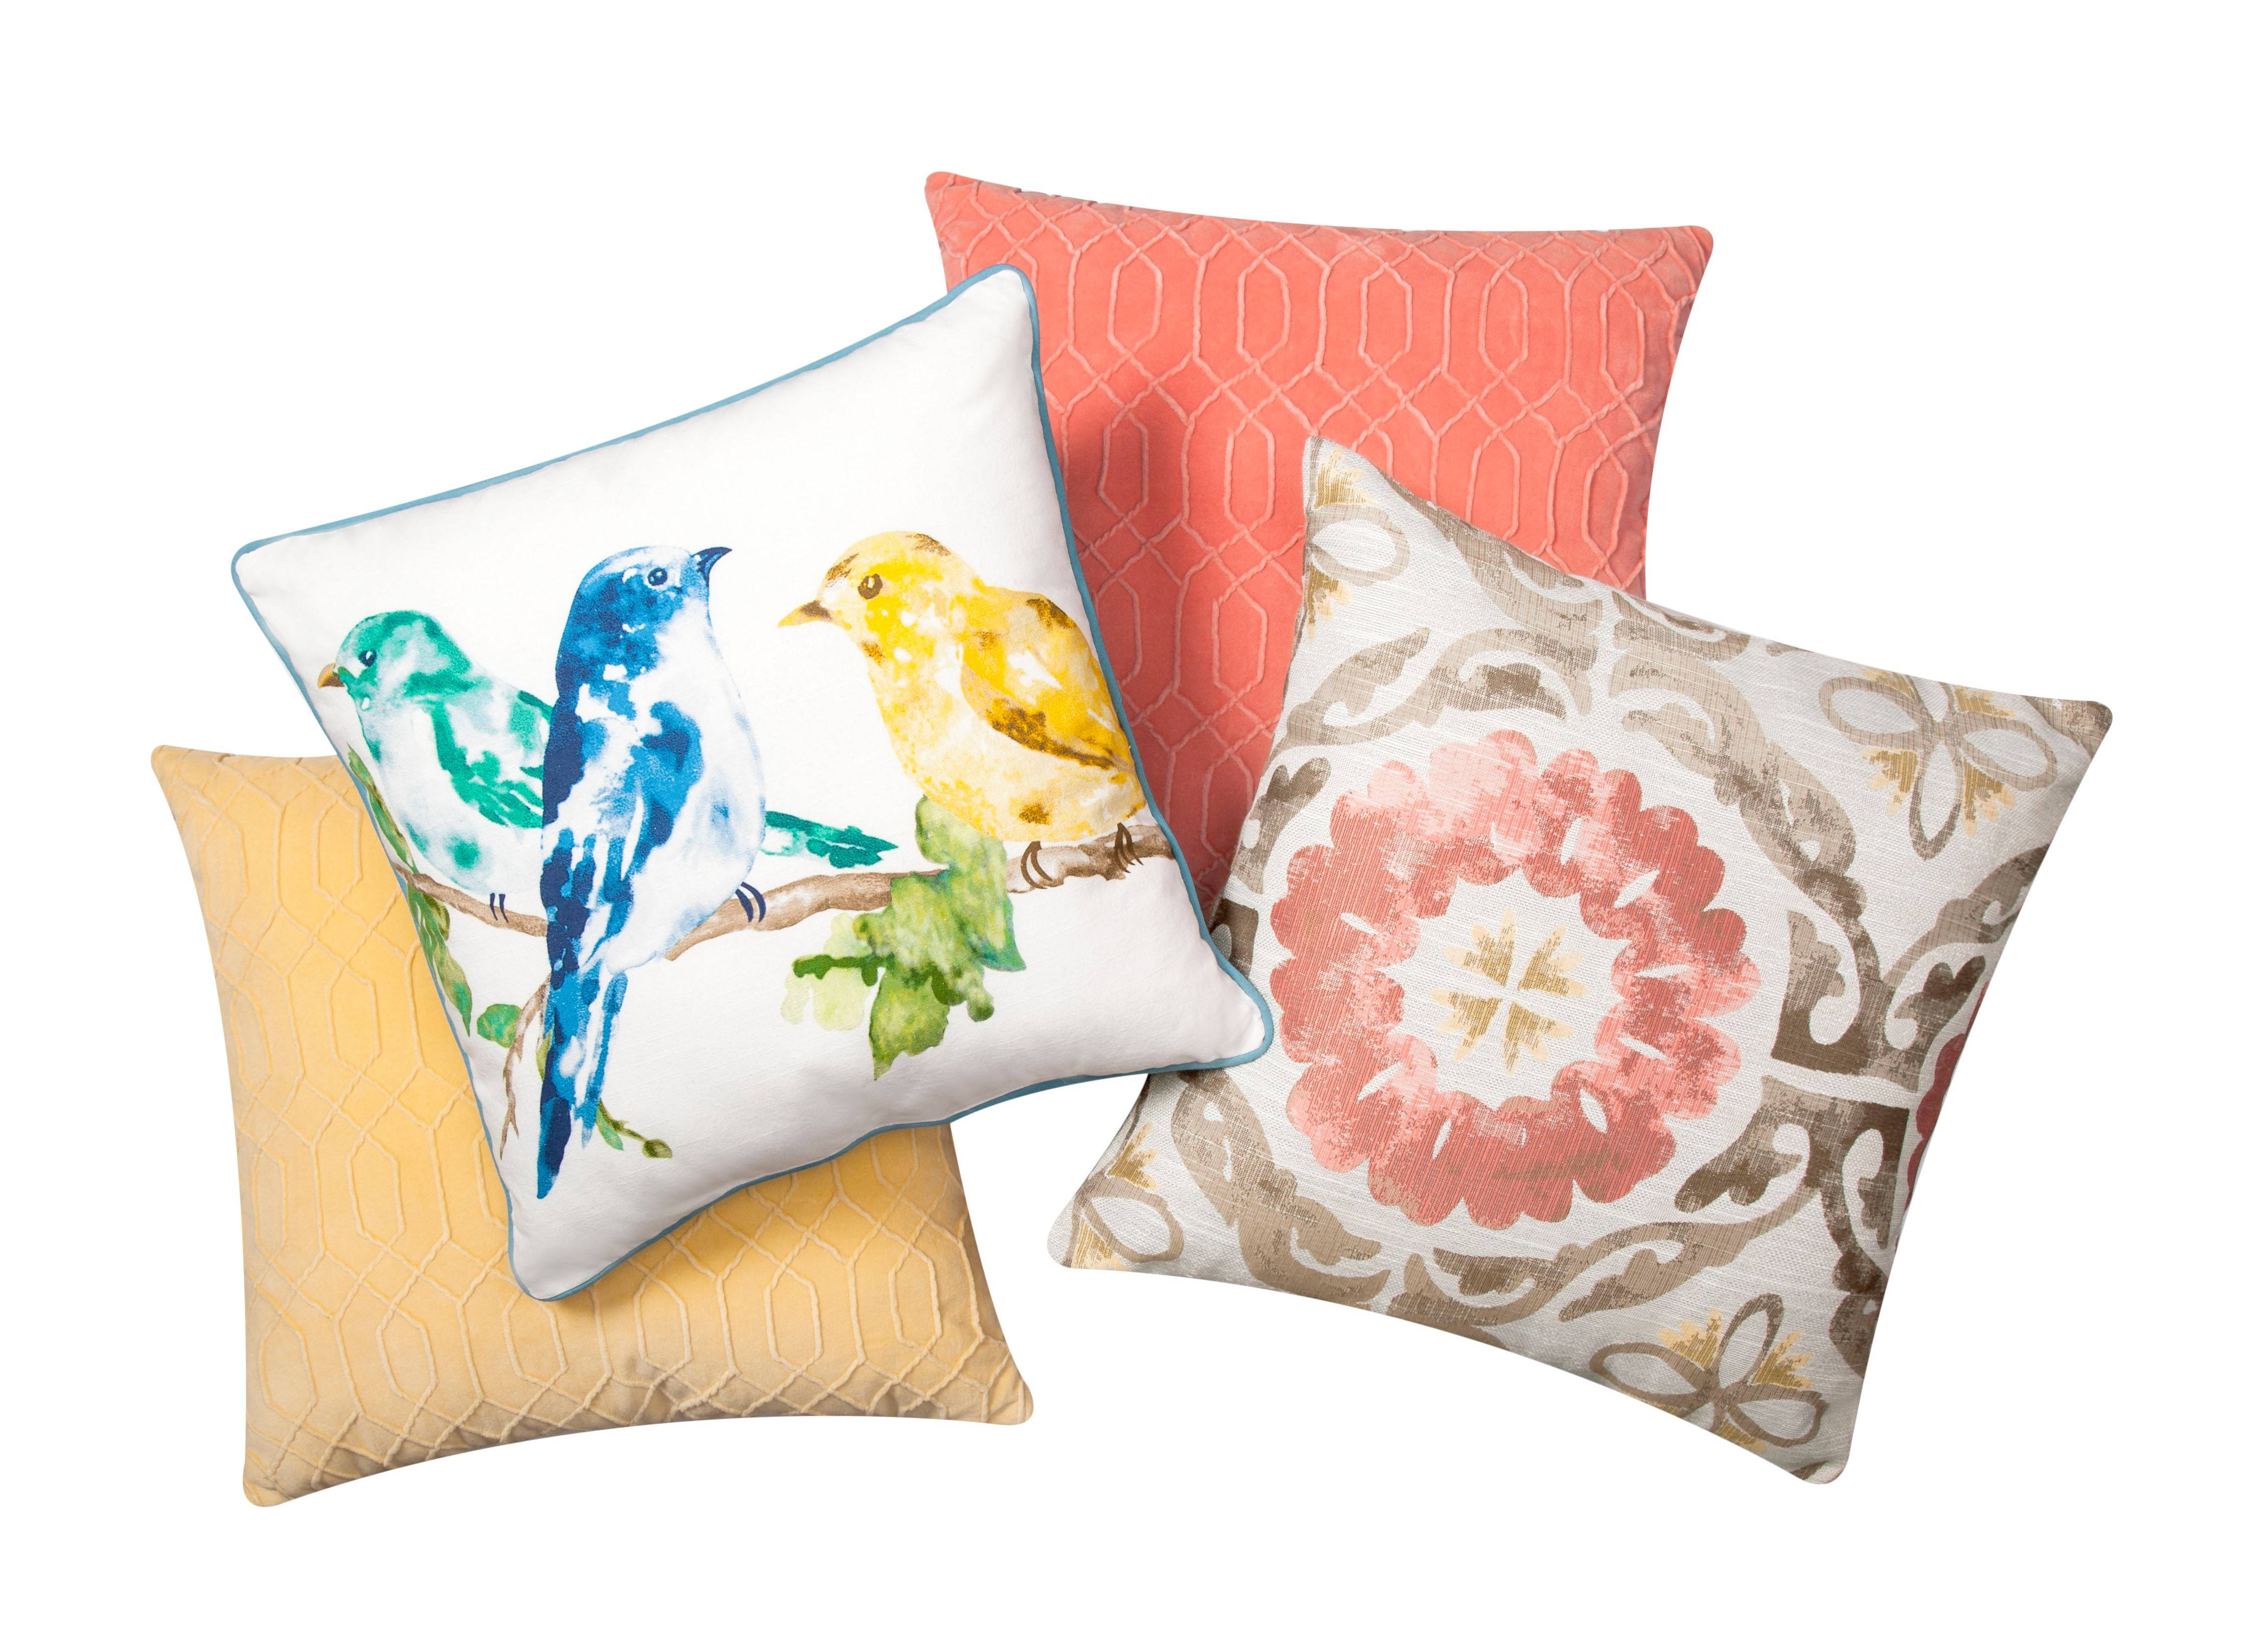 Mix standard items such as understated pillows with attention-grabbing pieces to achieve a wild, yet cohesive look.